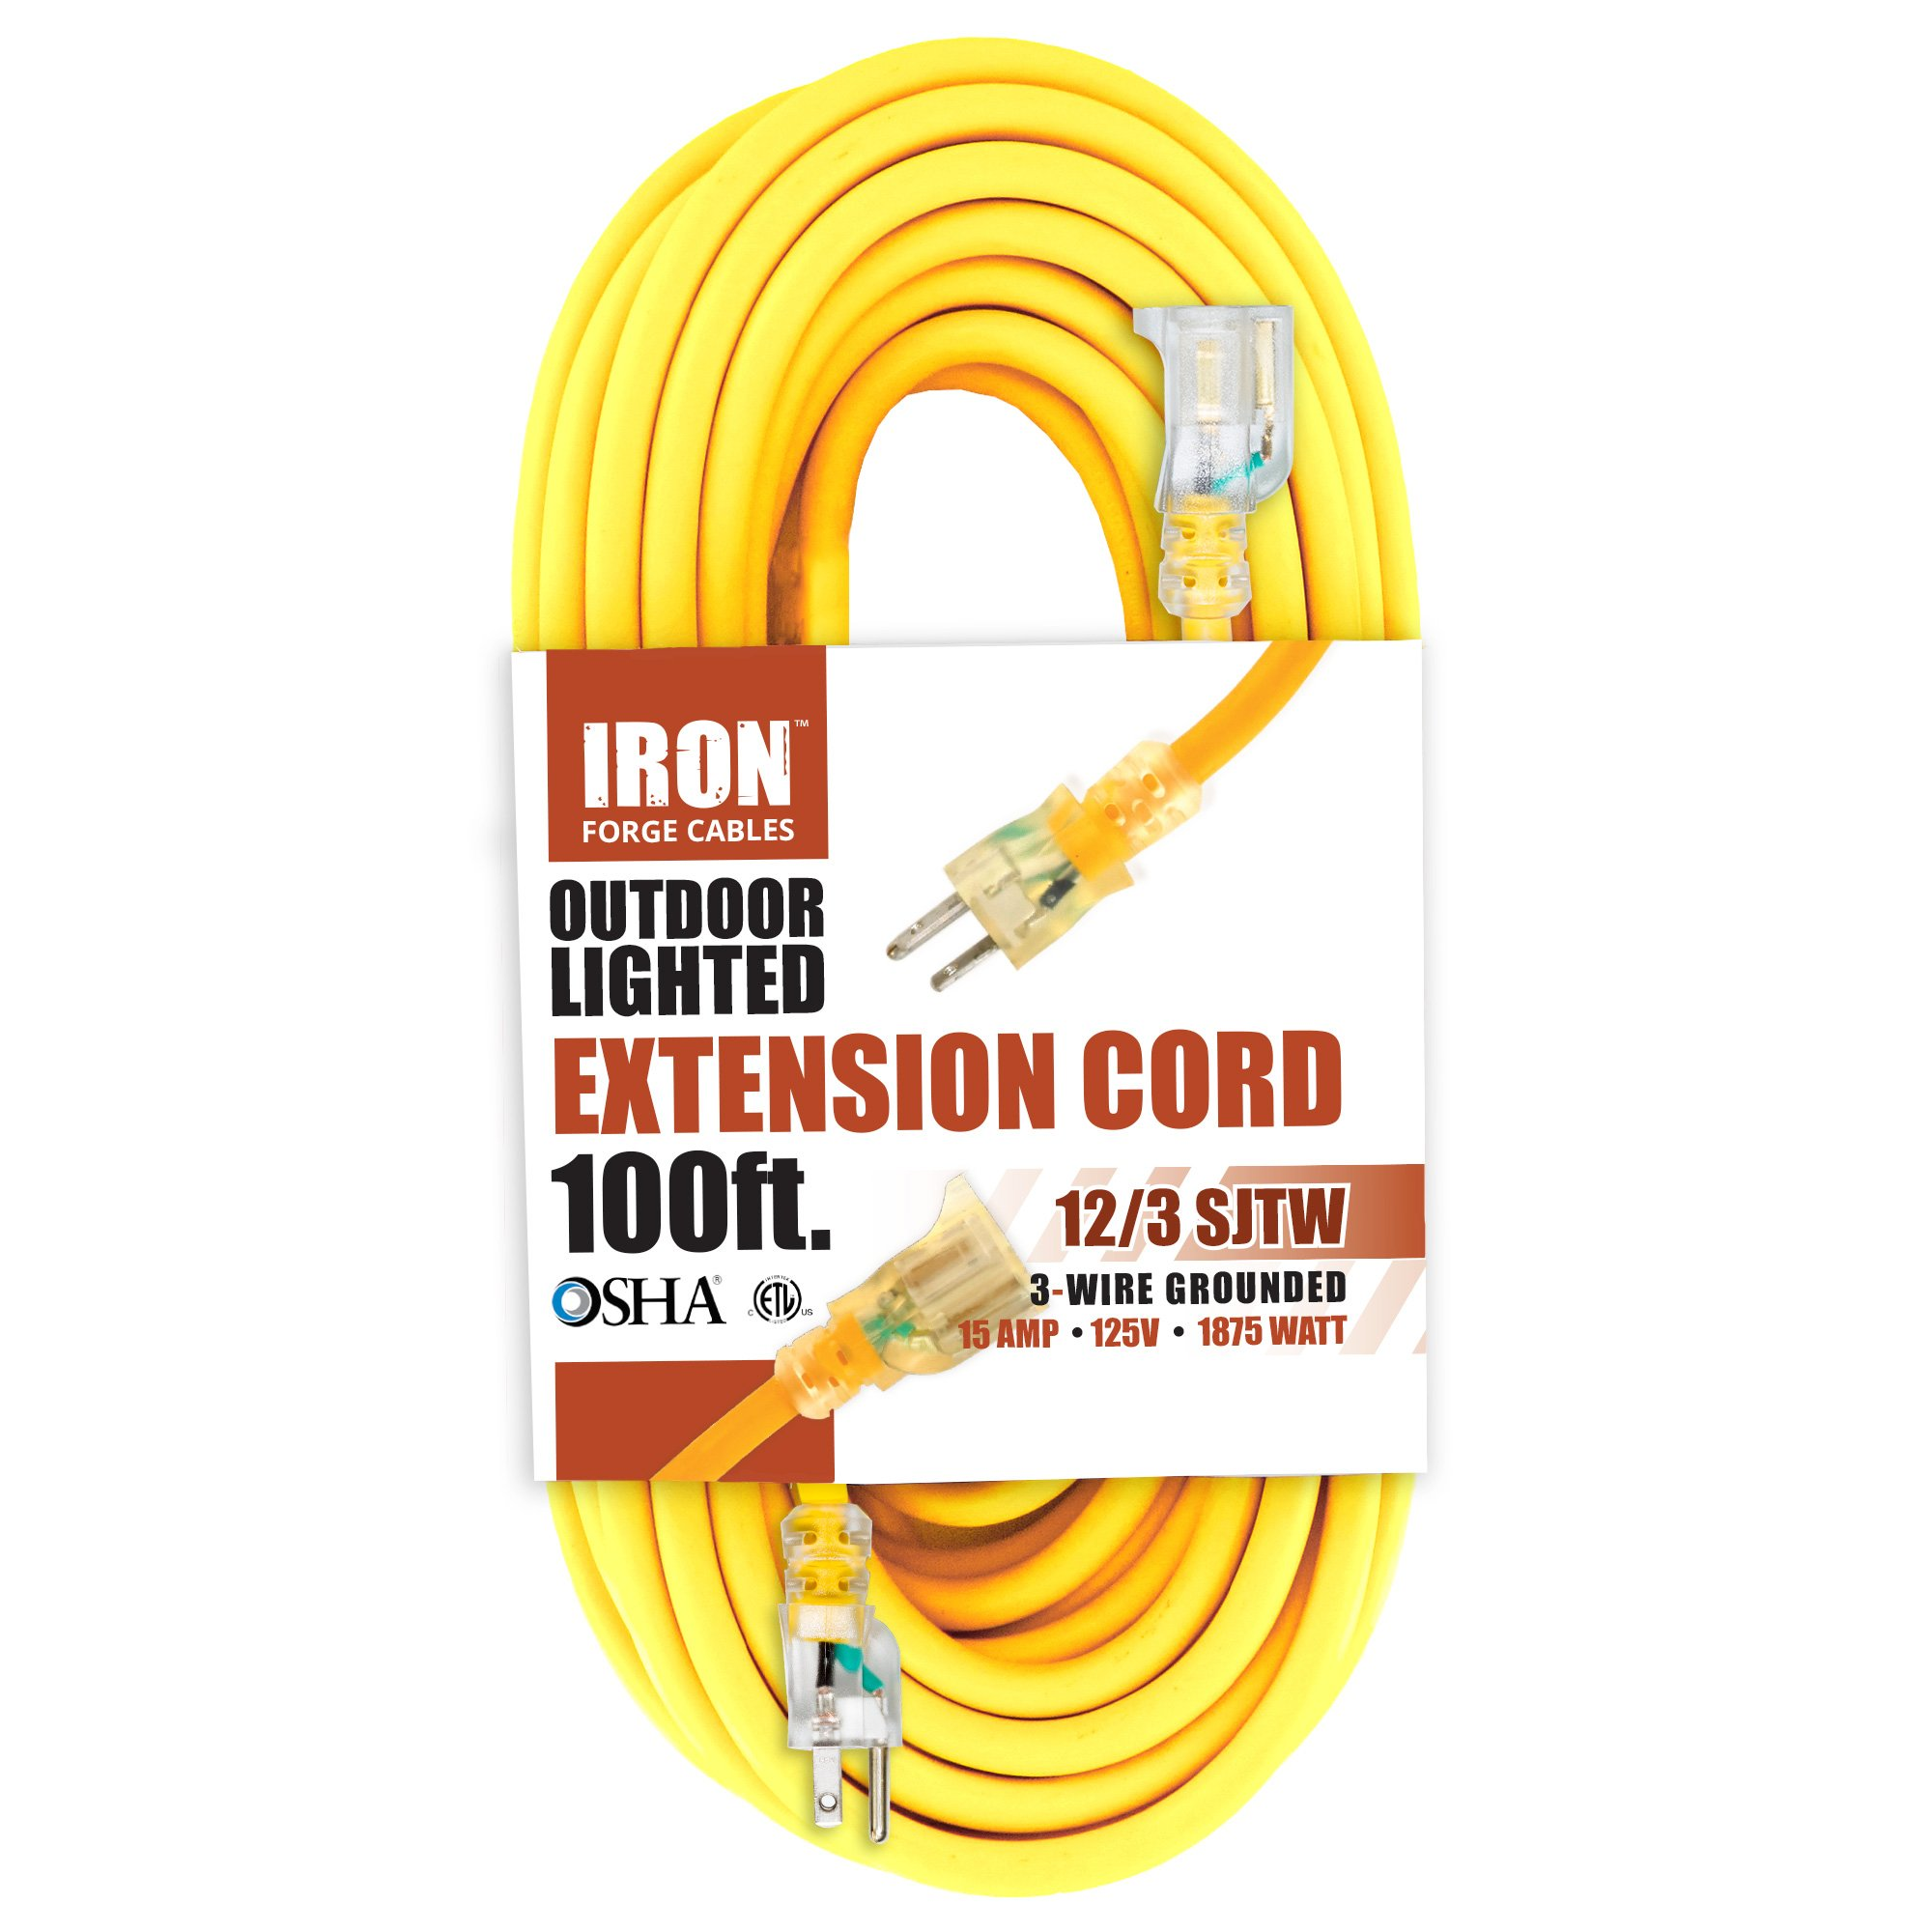 Extension Cord Ratings : Best rated in extension cords helpful customer reviews